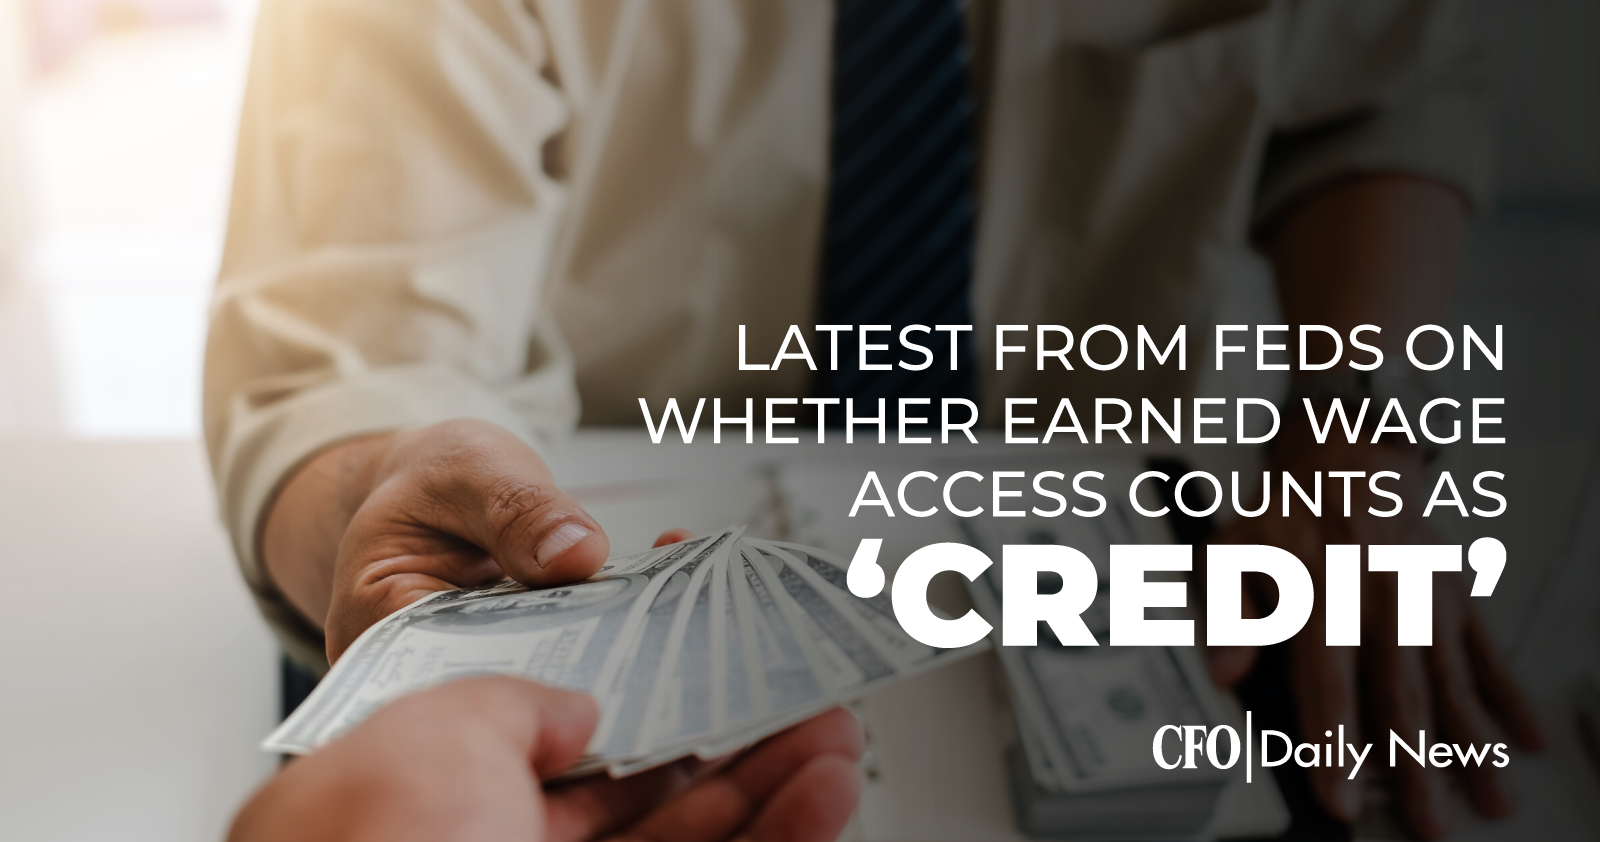 latest from feds on whether earned wage access counts as credit